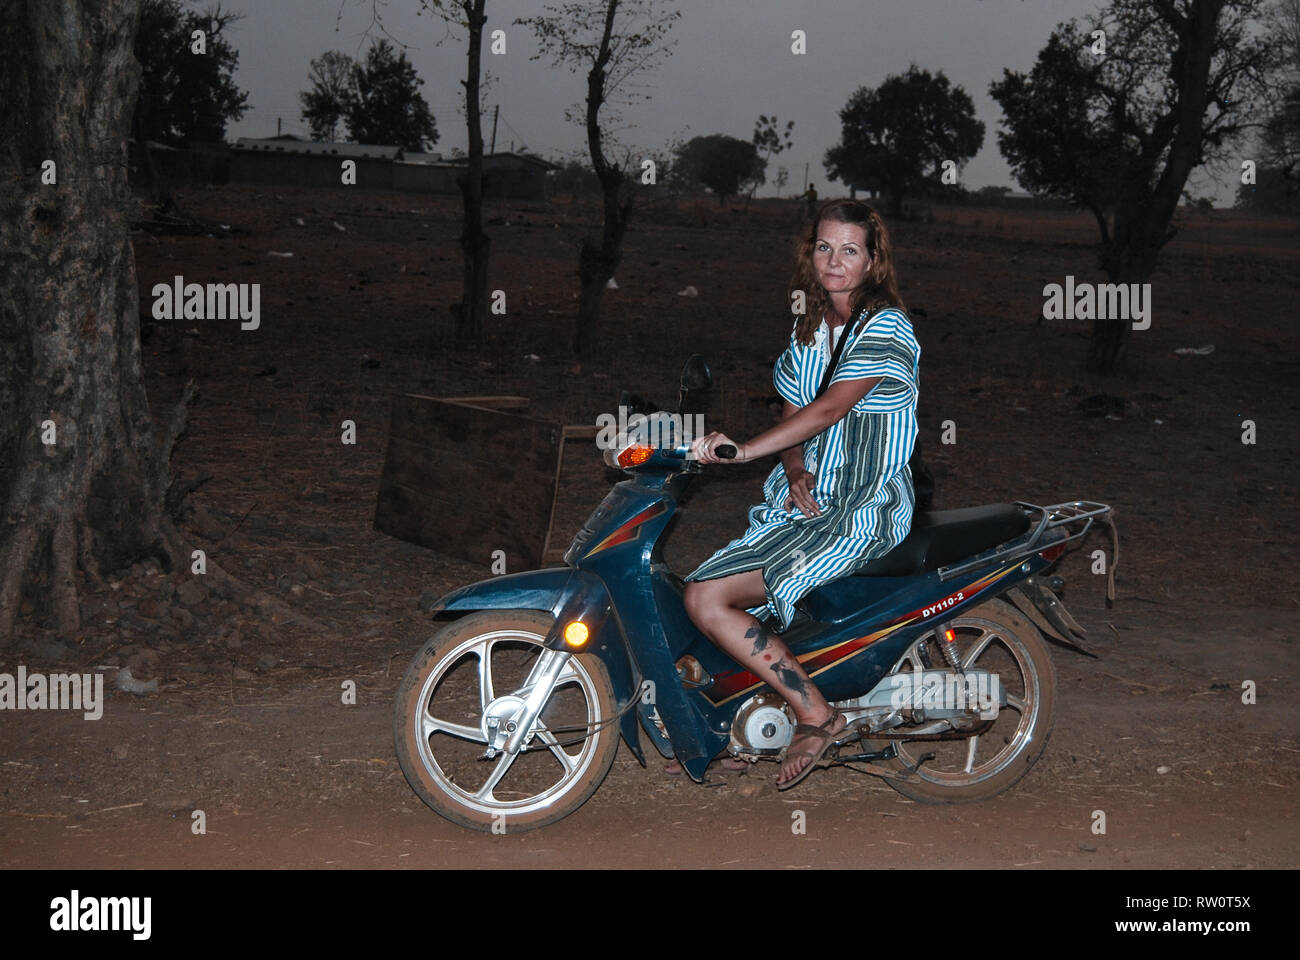 A caucasian woman wearing traditional Ghanaian clothes is posing on a blue scooter during the night time in a savanna - Stock Image